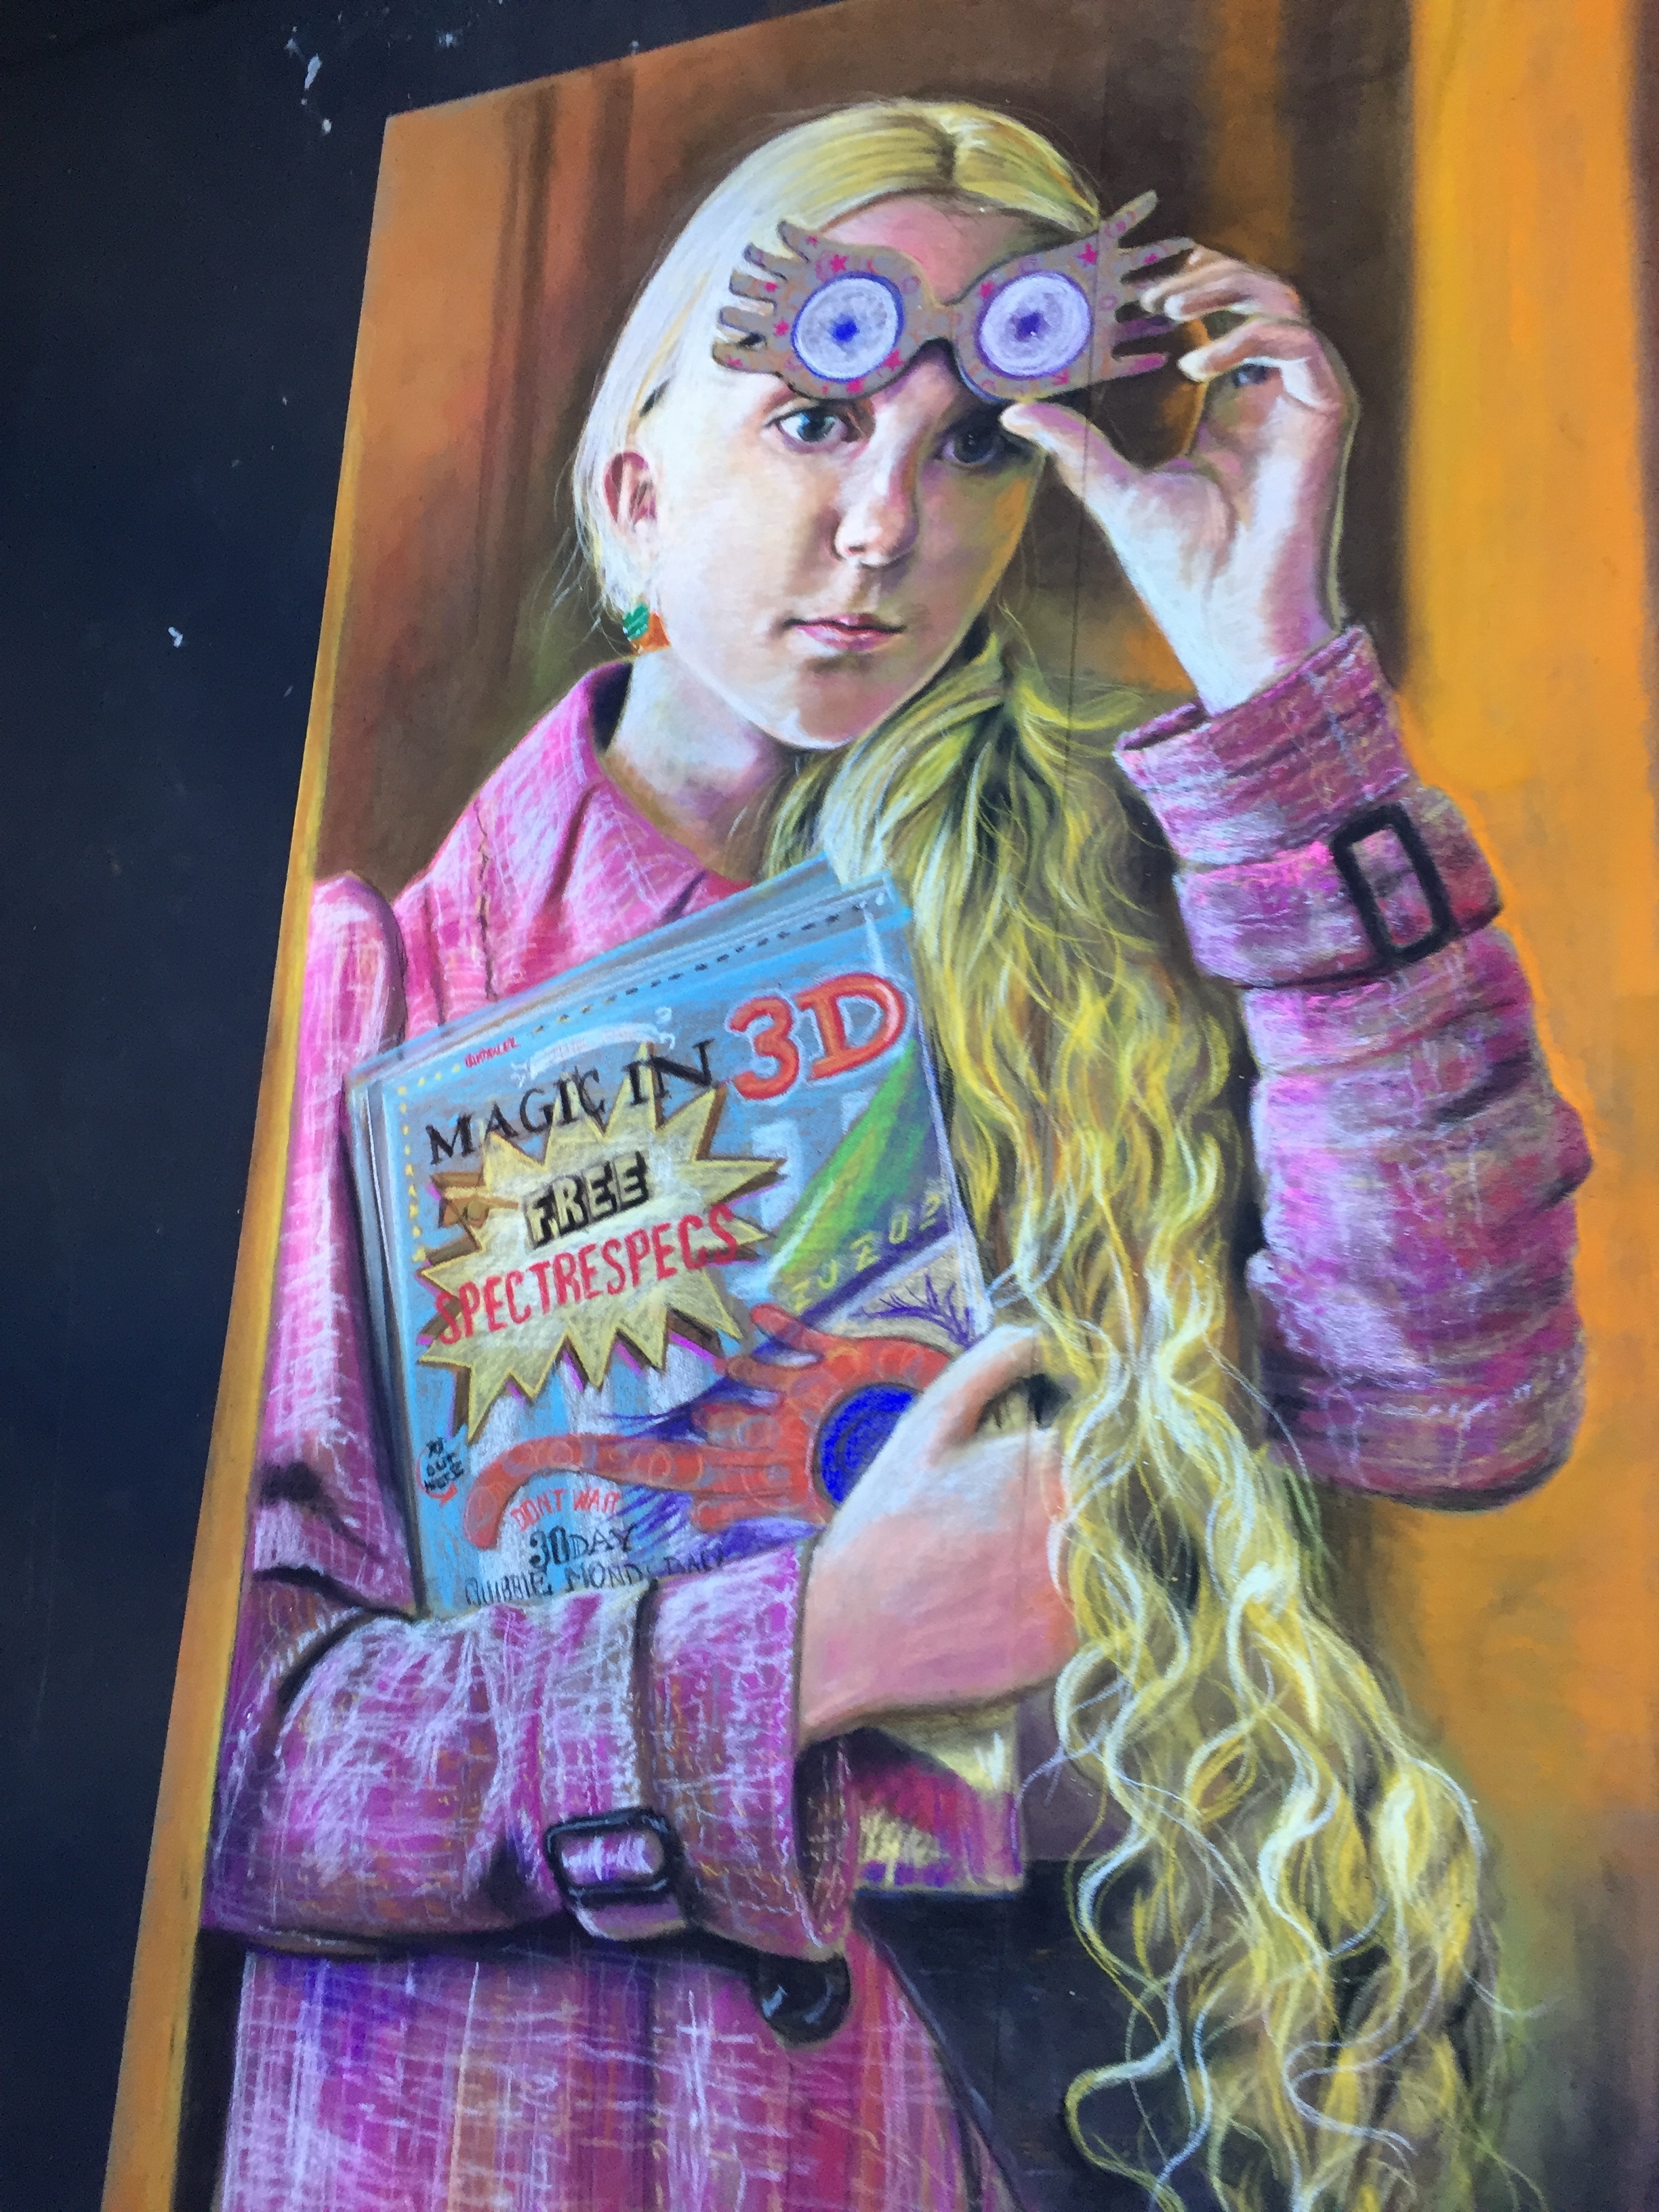 Luna Lovegood chalk art at the Celebration of Harry Potter at Universal Studios Orlando Florida